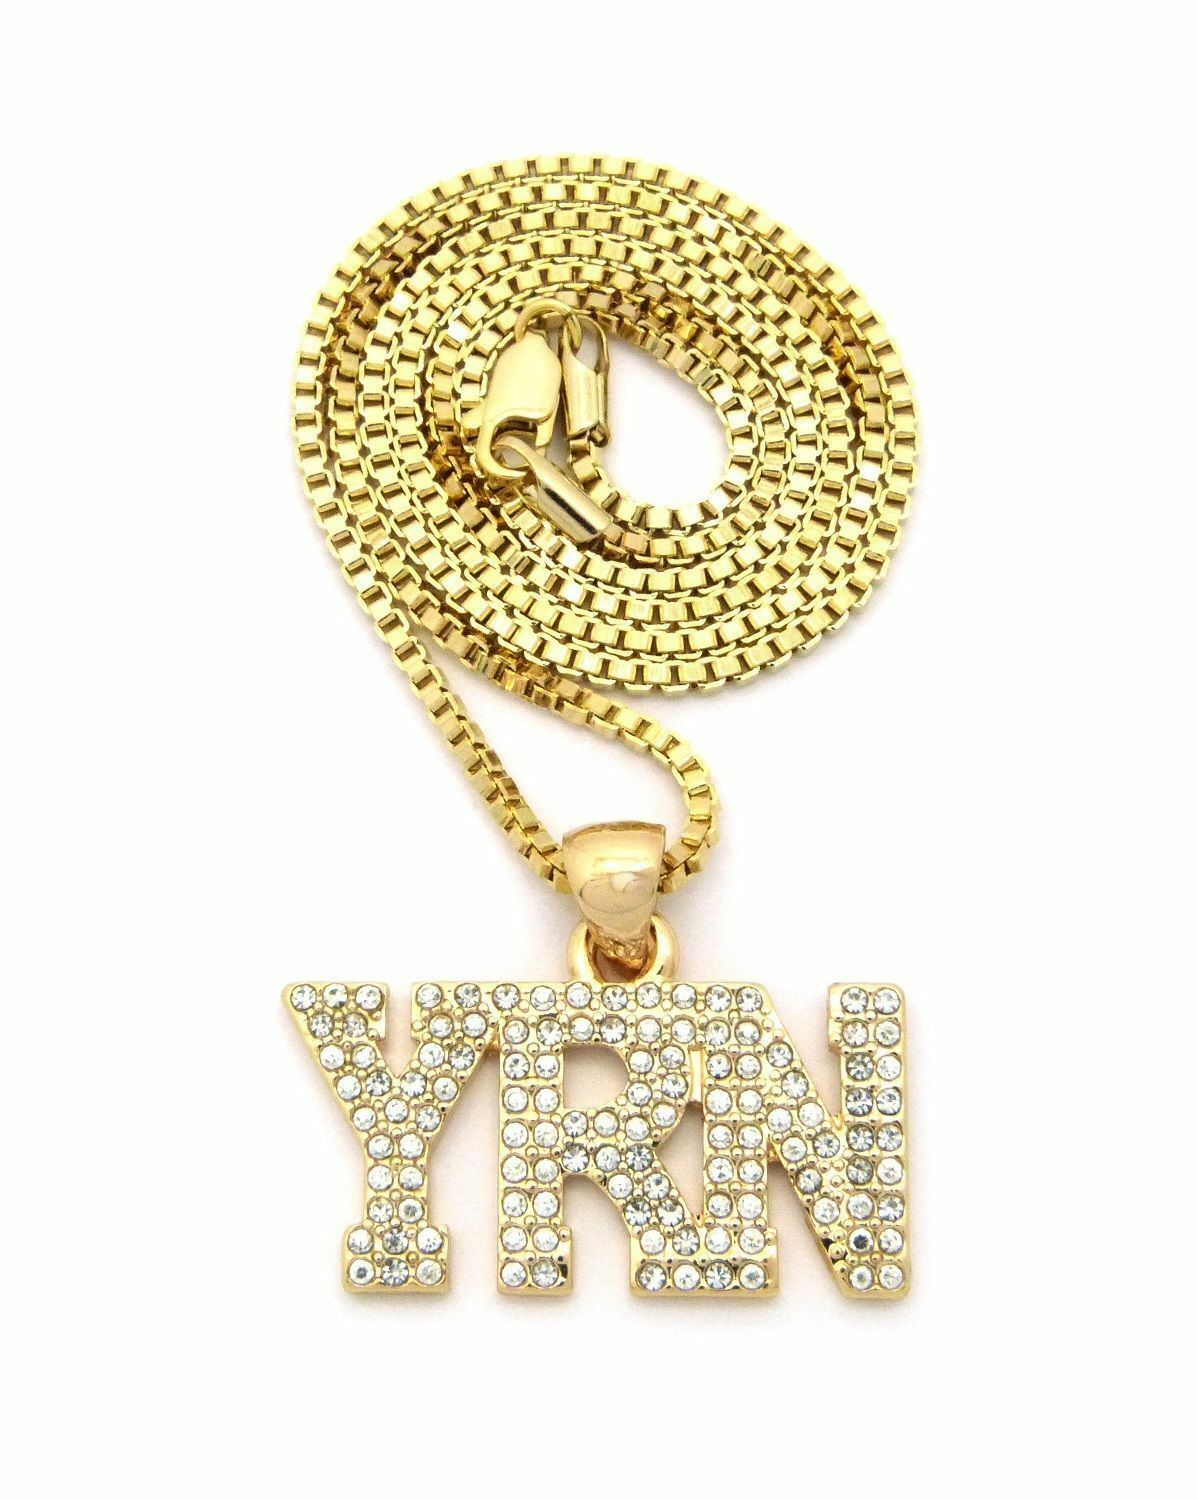 "Men's Iced Gold PT Hip Hop YRN CZ Pendant w/ 2mm 24"" Box"